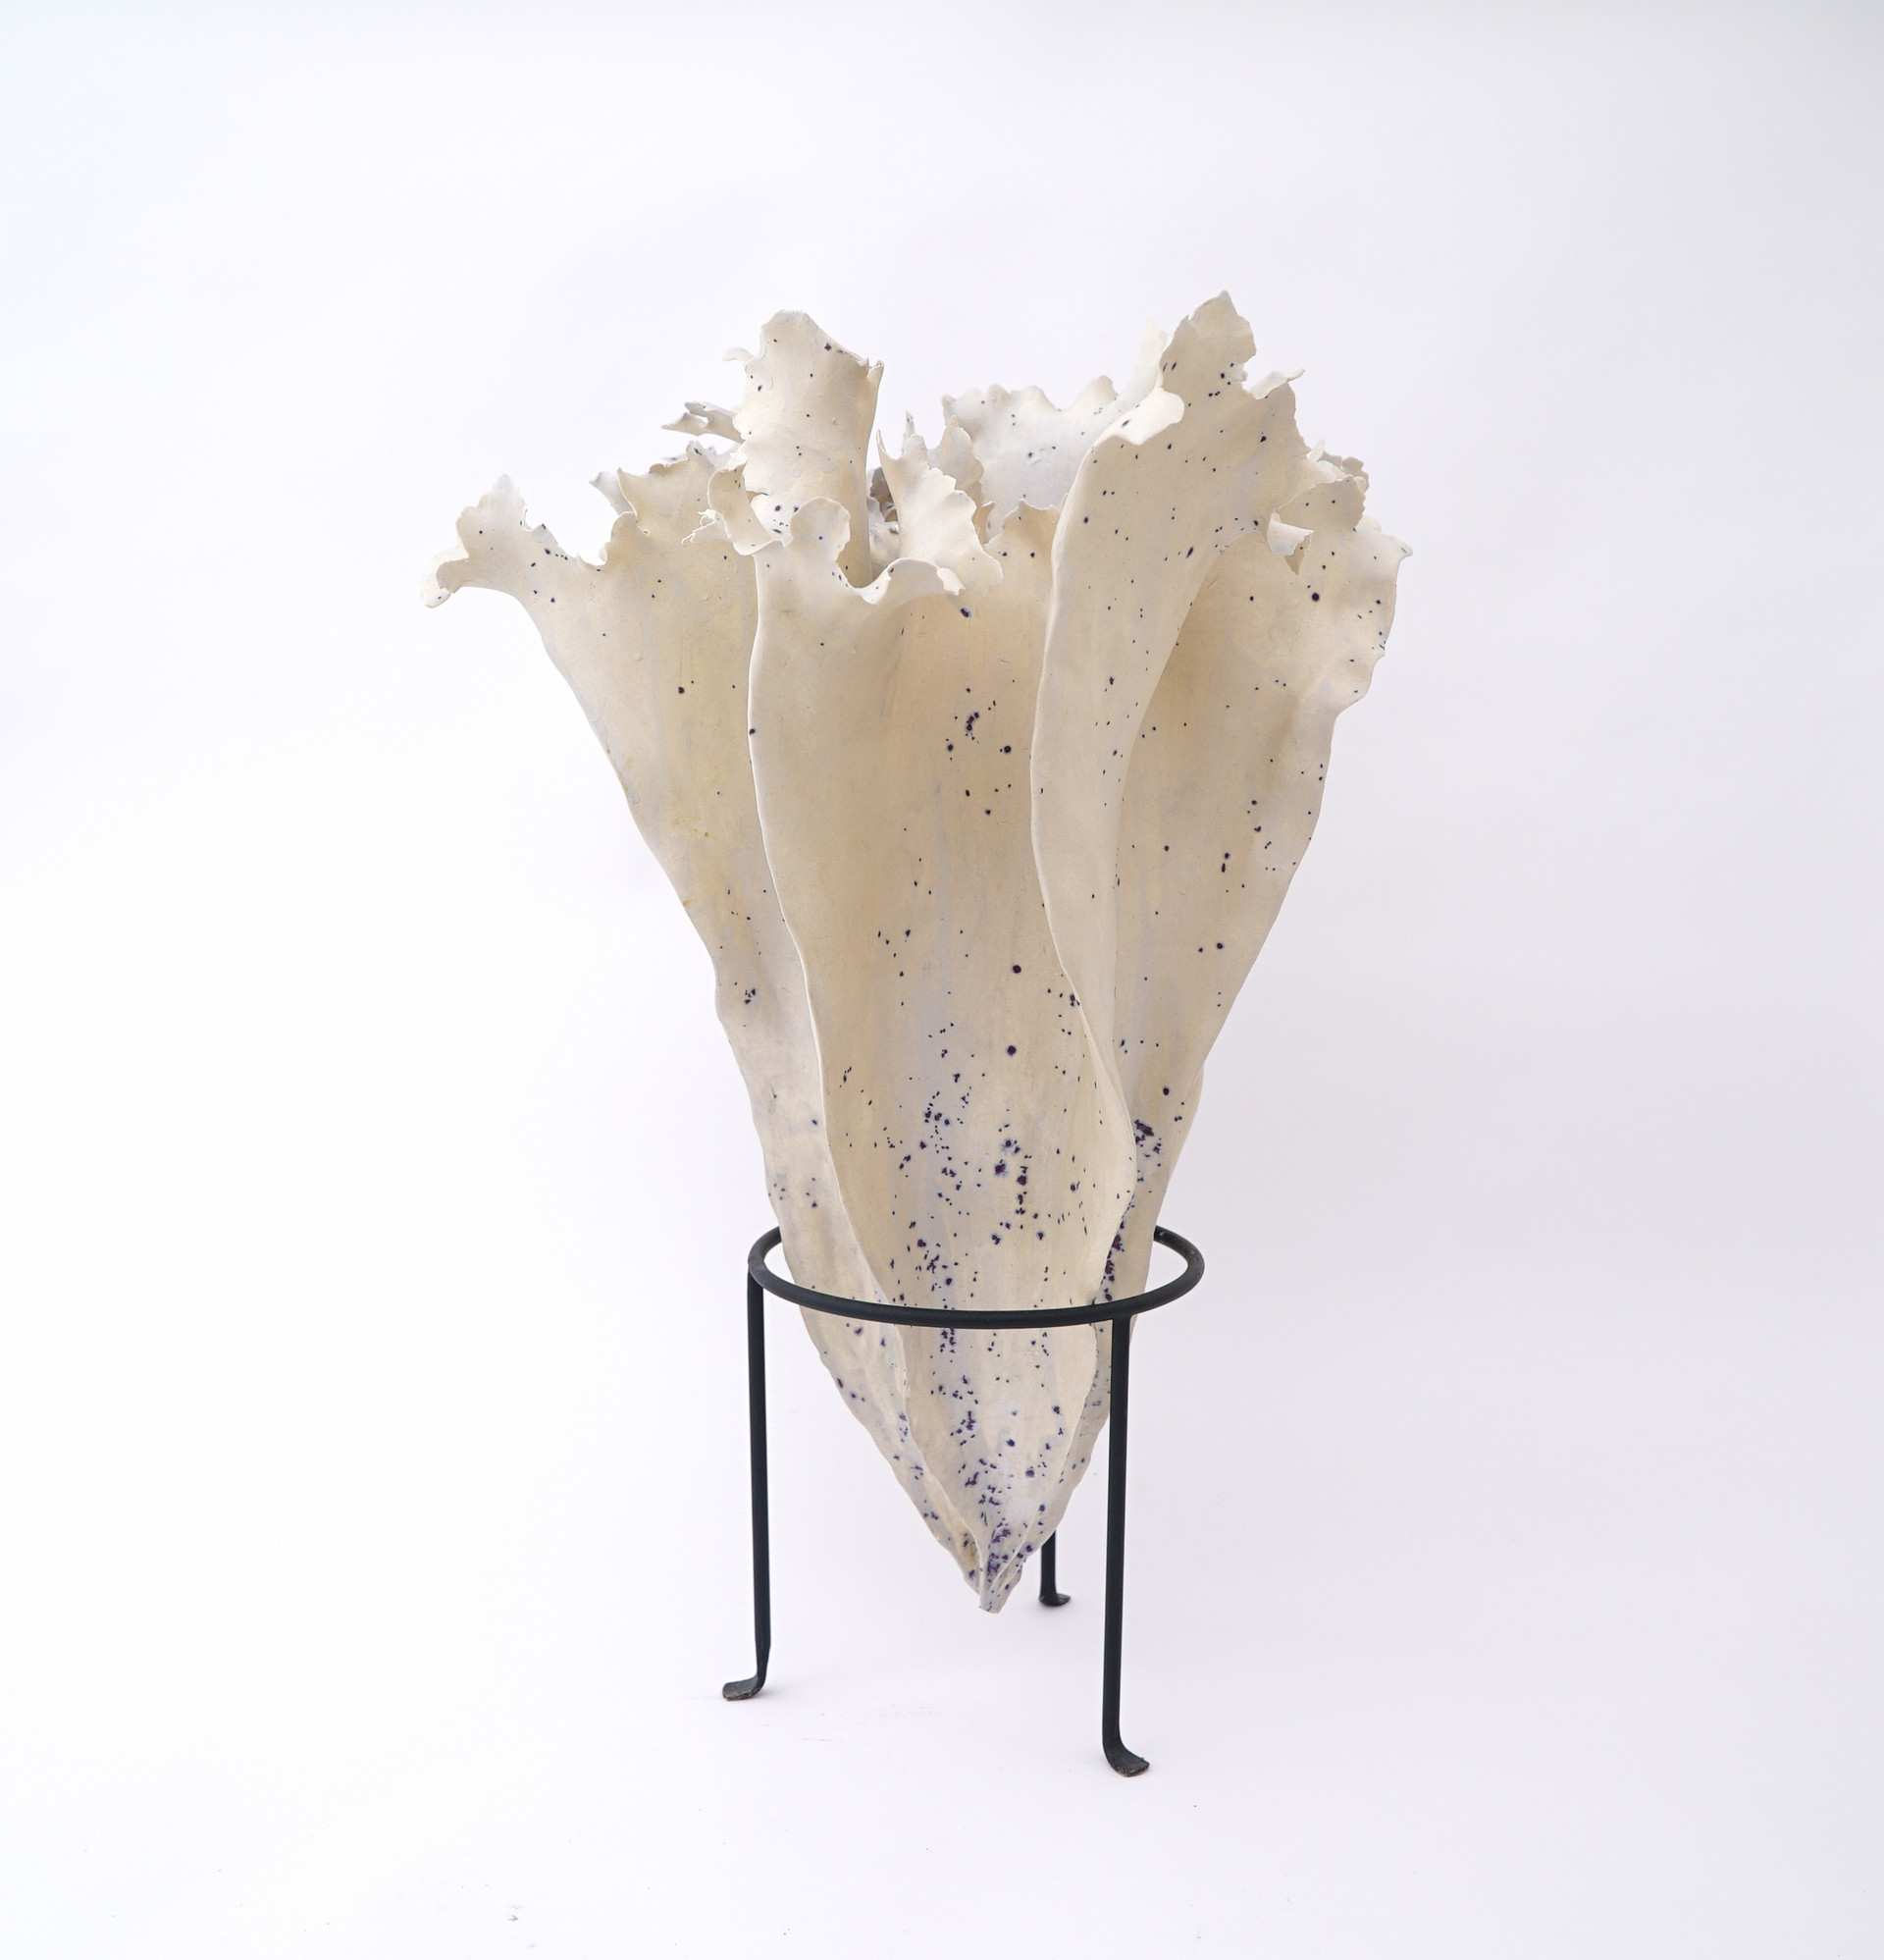 """Heart Of The Flame, 2019 porcelain, ceramic glaze 20""""h x 15""""w x 17""""d AVAILABLE"""